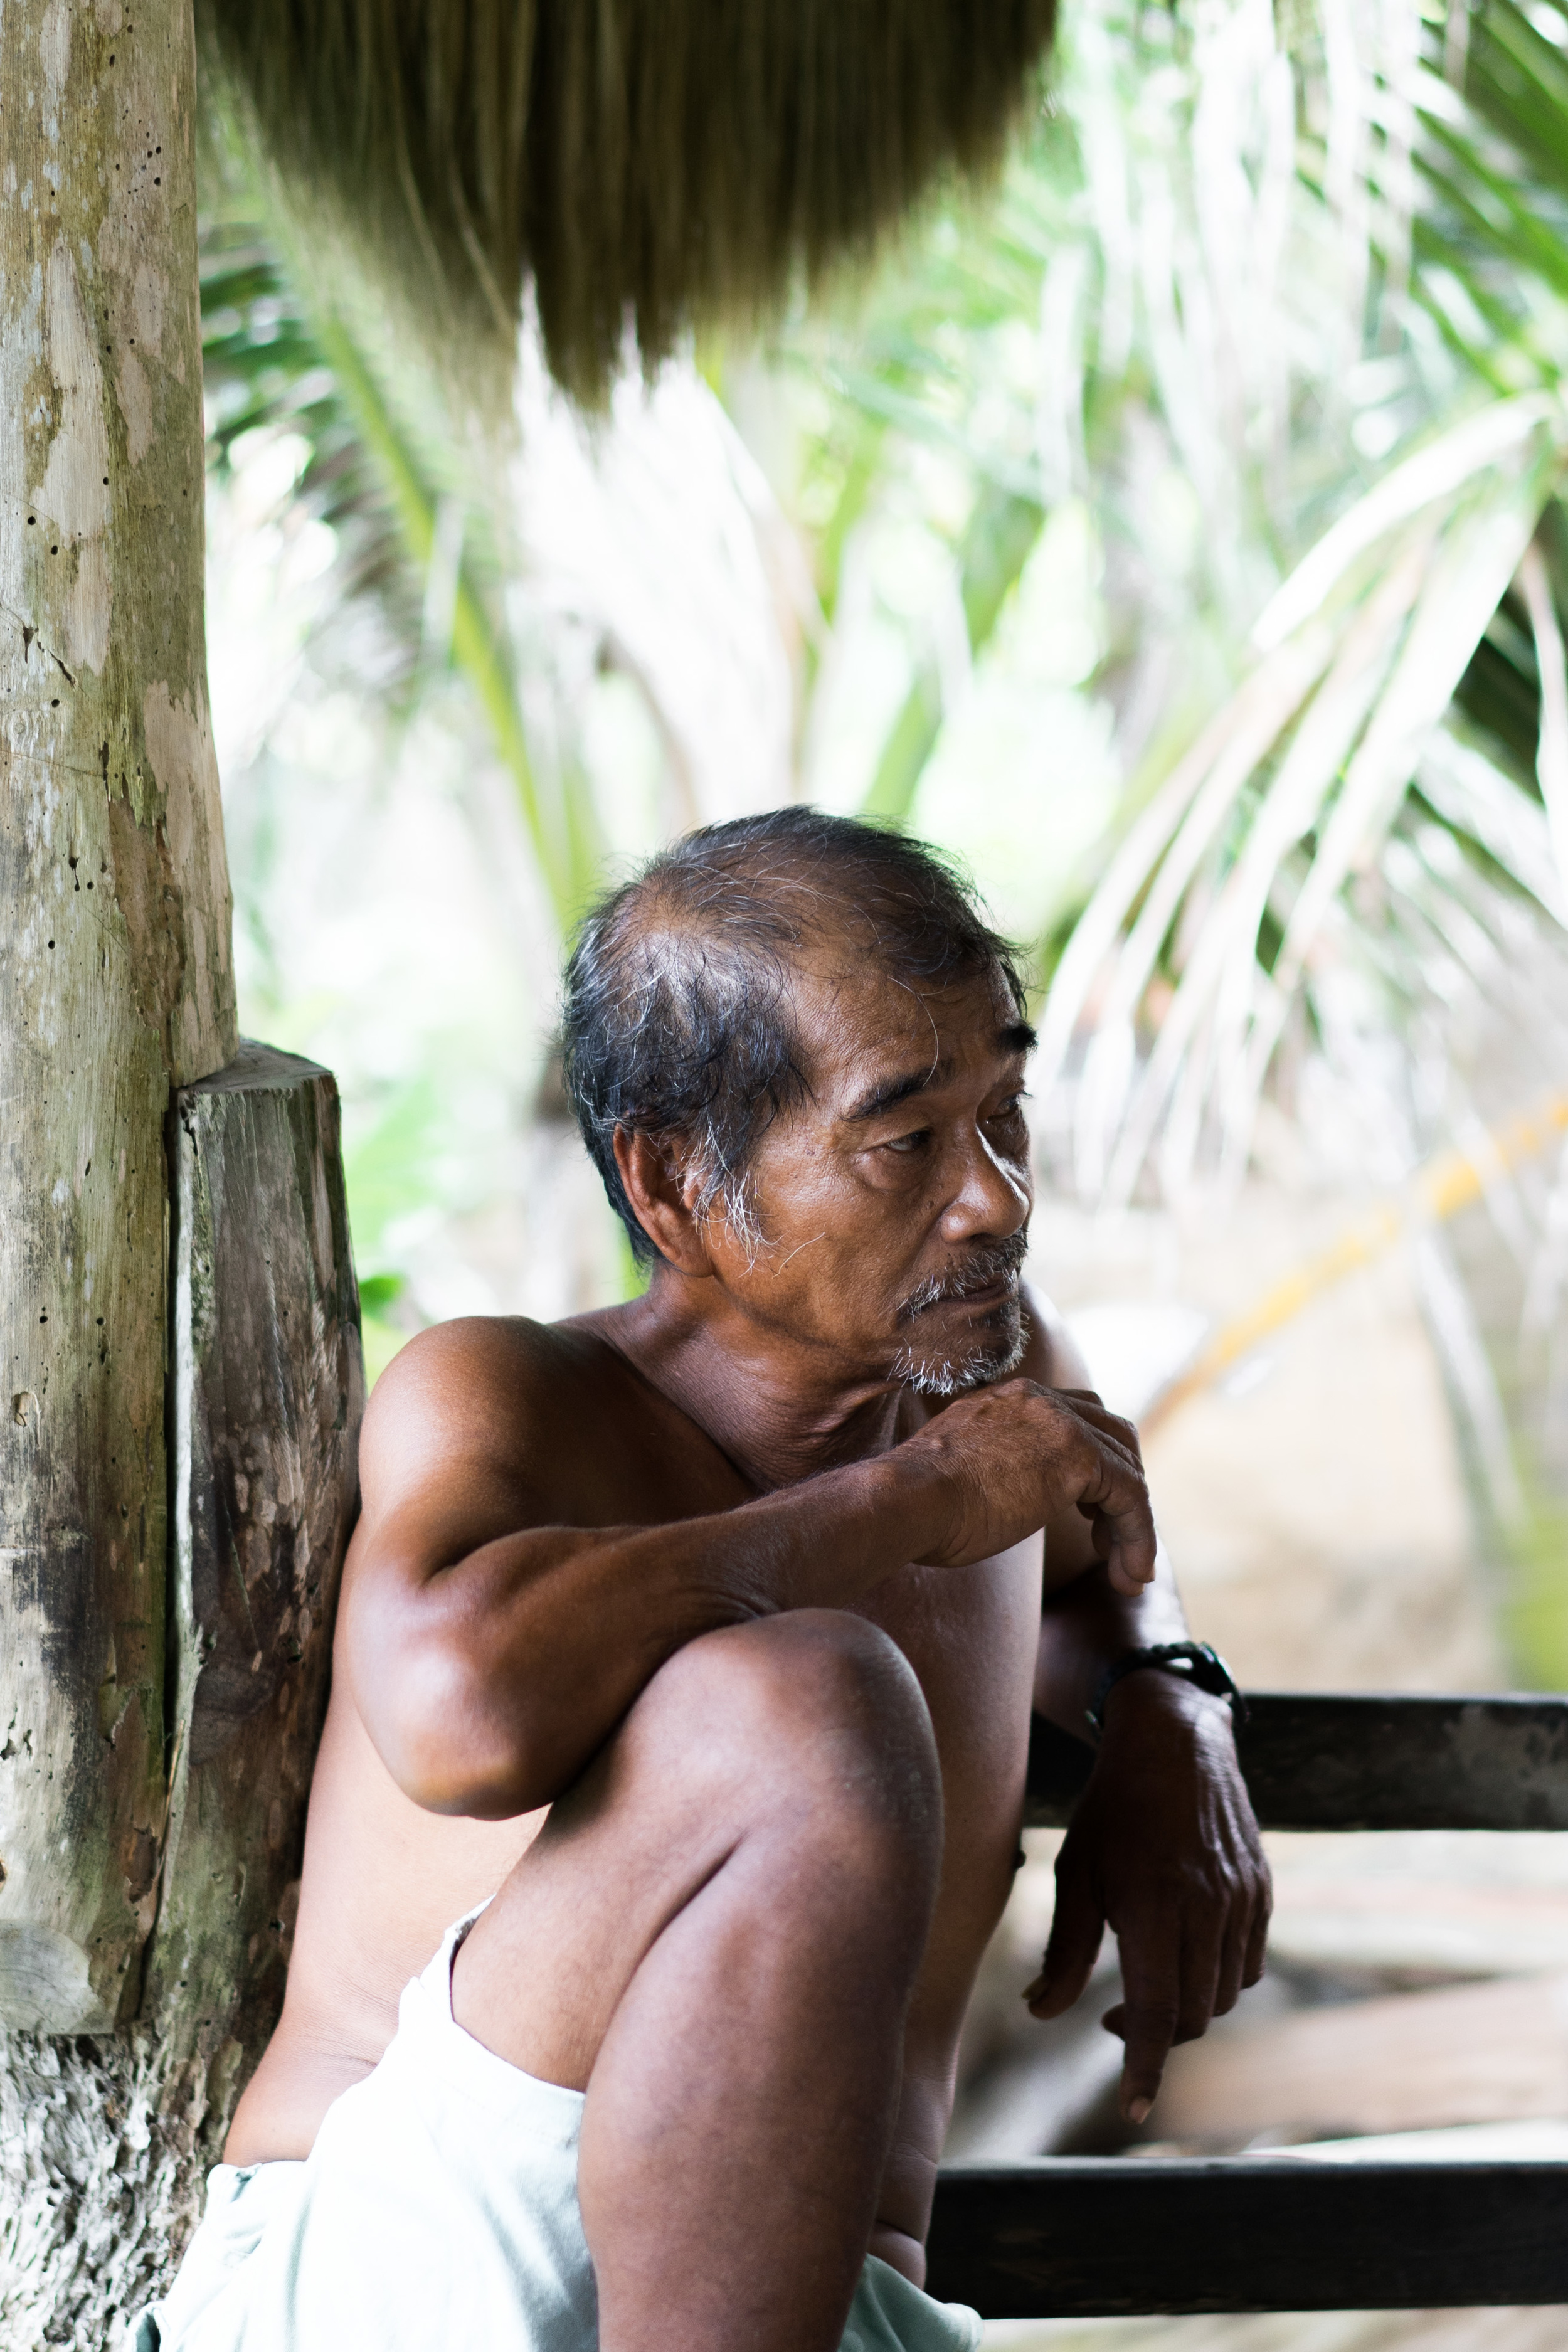 We got to meet a shaman of one of the fishing villages in Batanes.